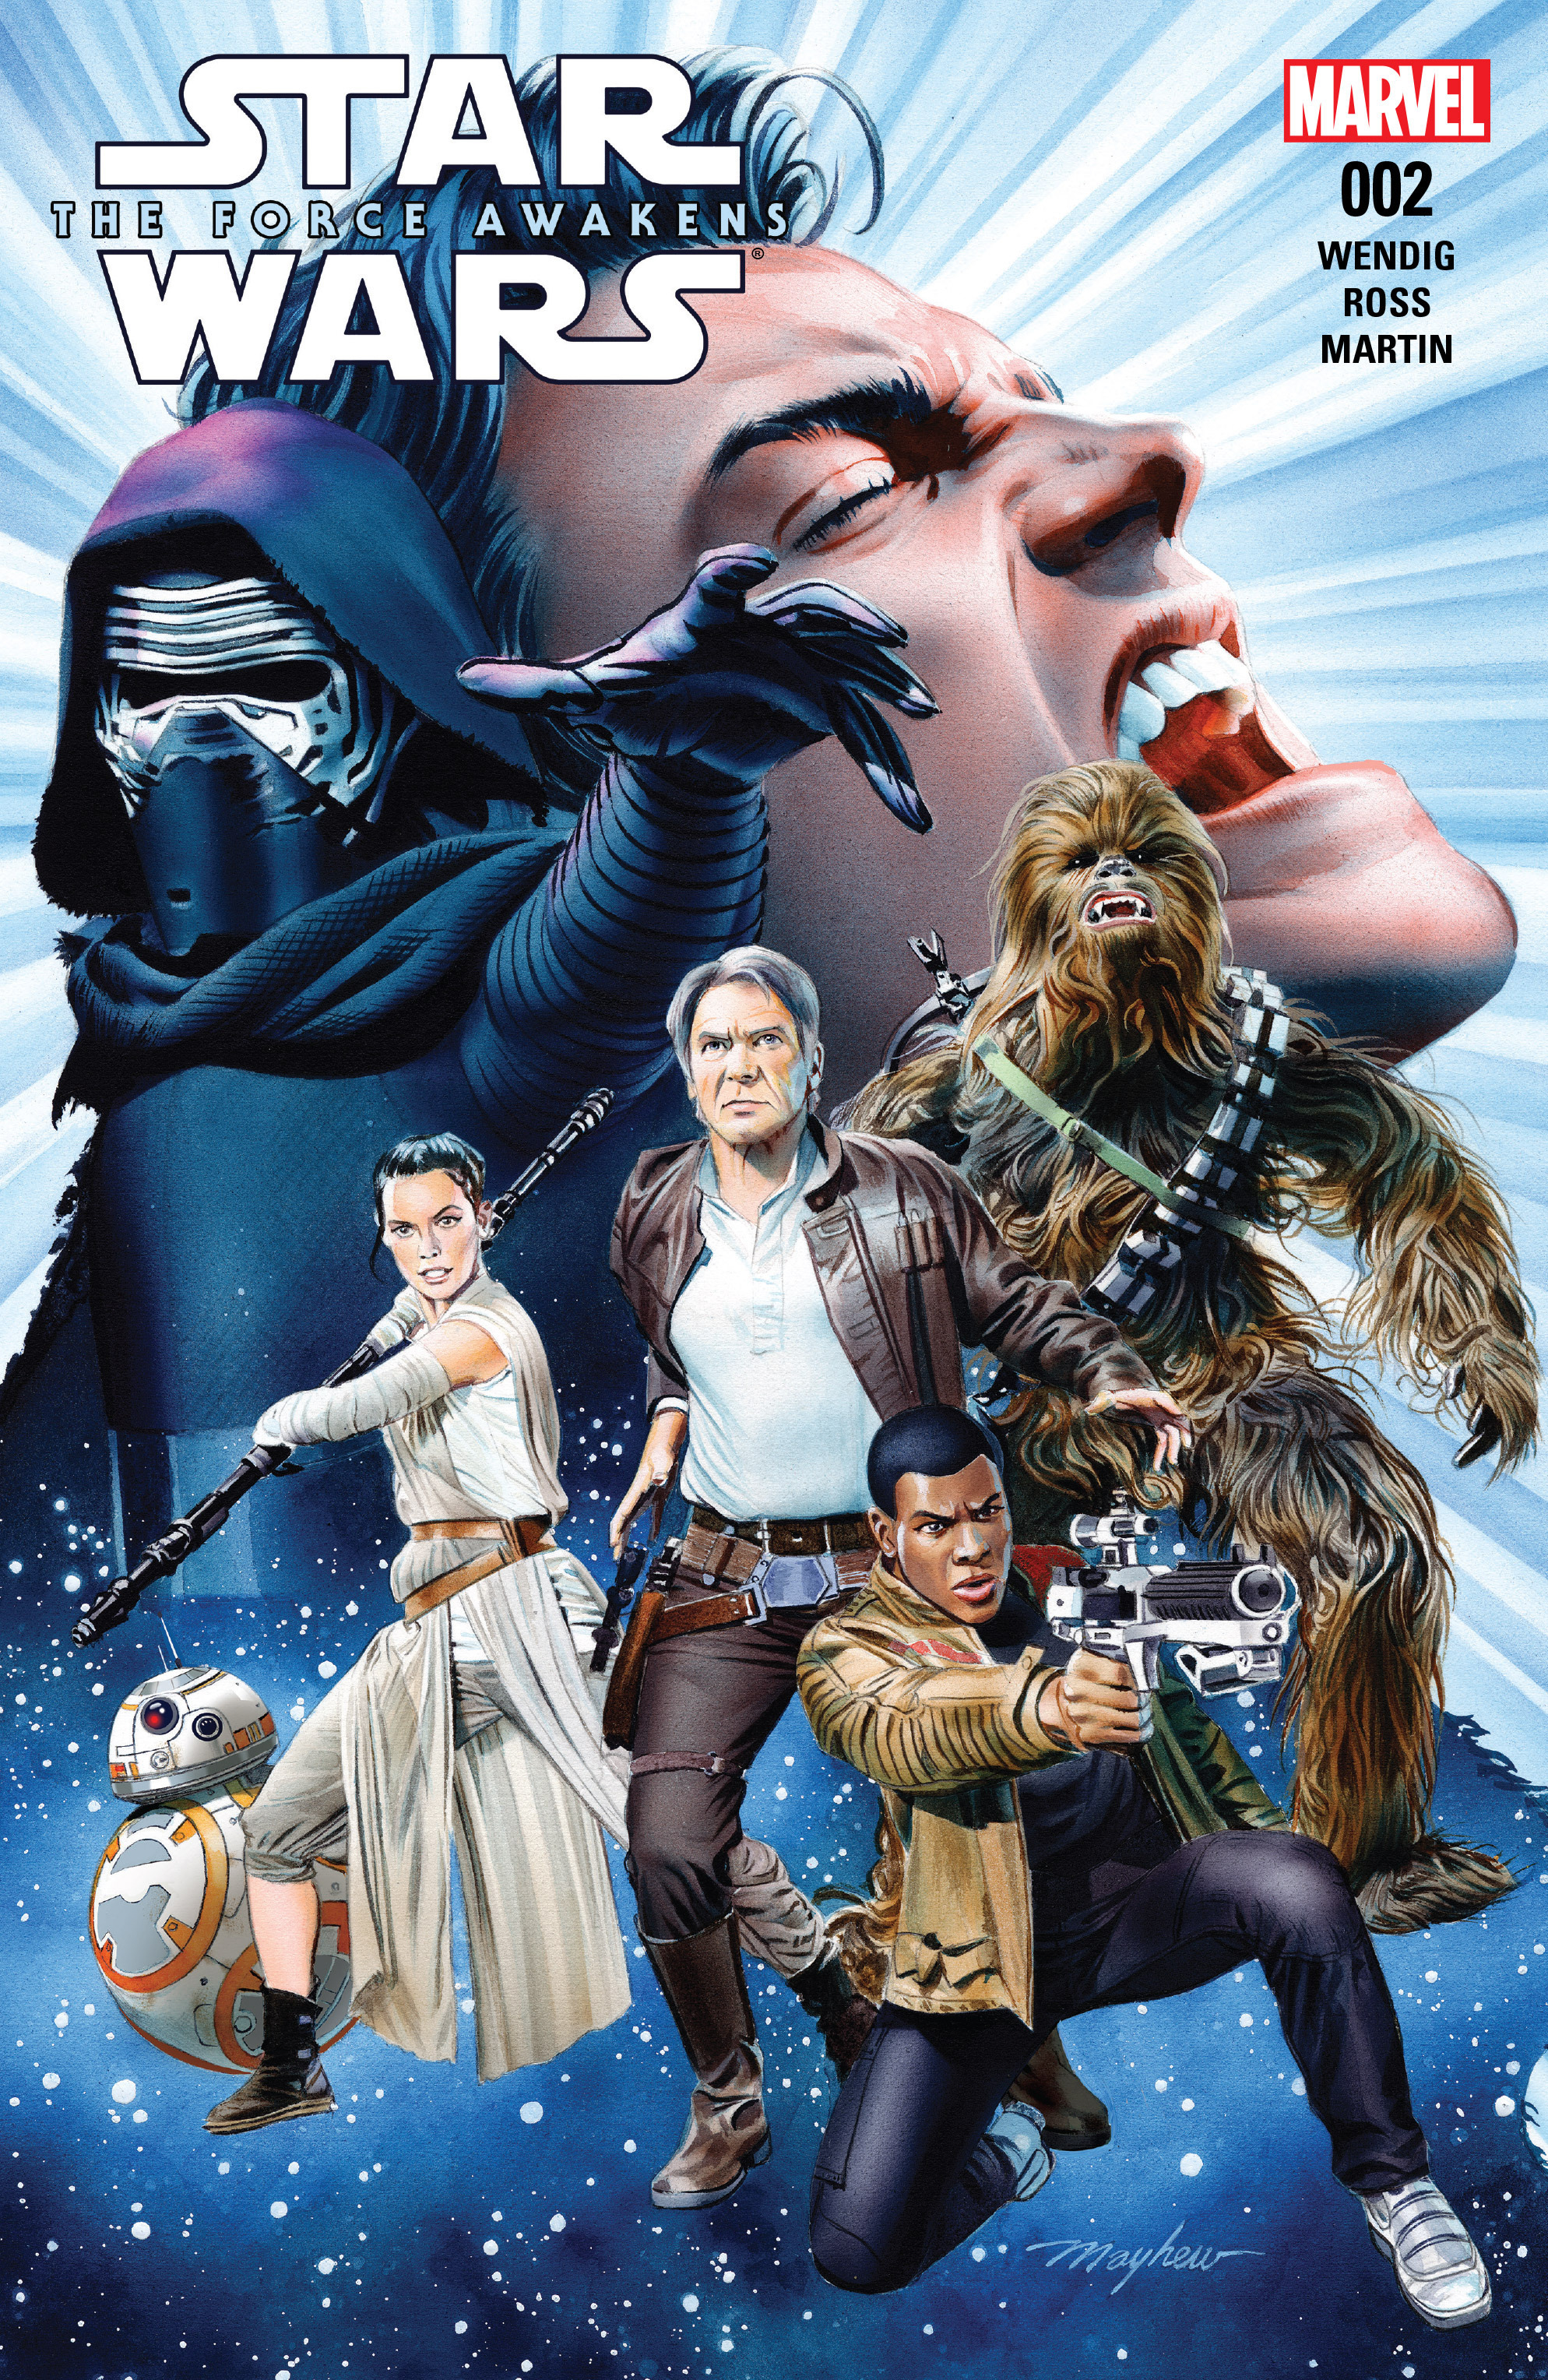 Star Wars - The Force Awakens Adaptation #2